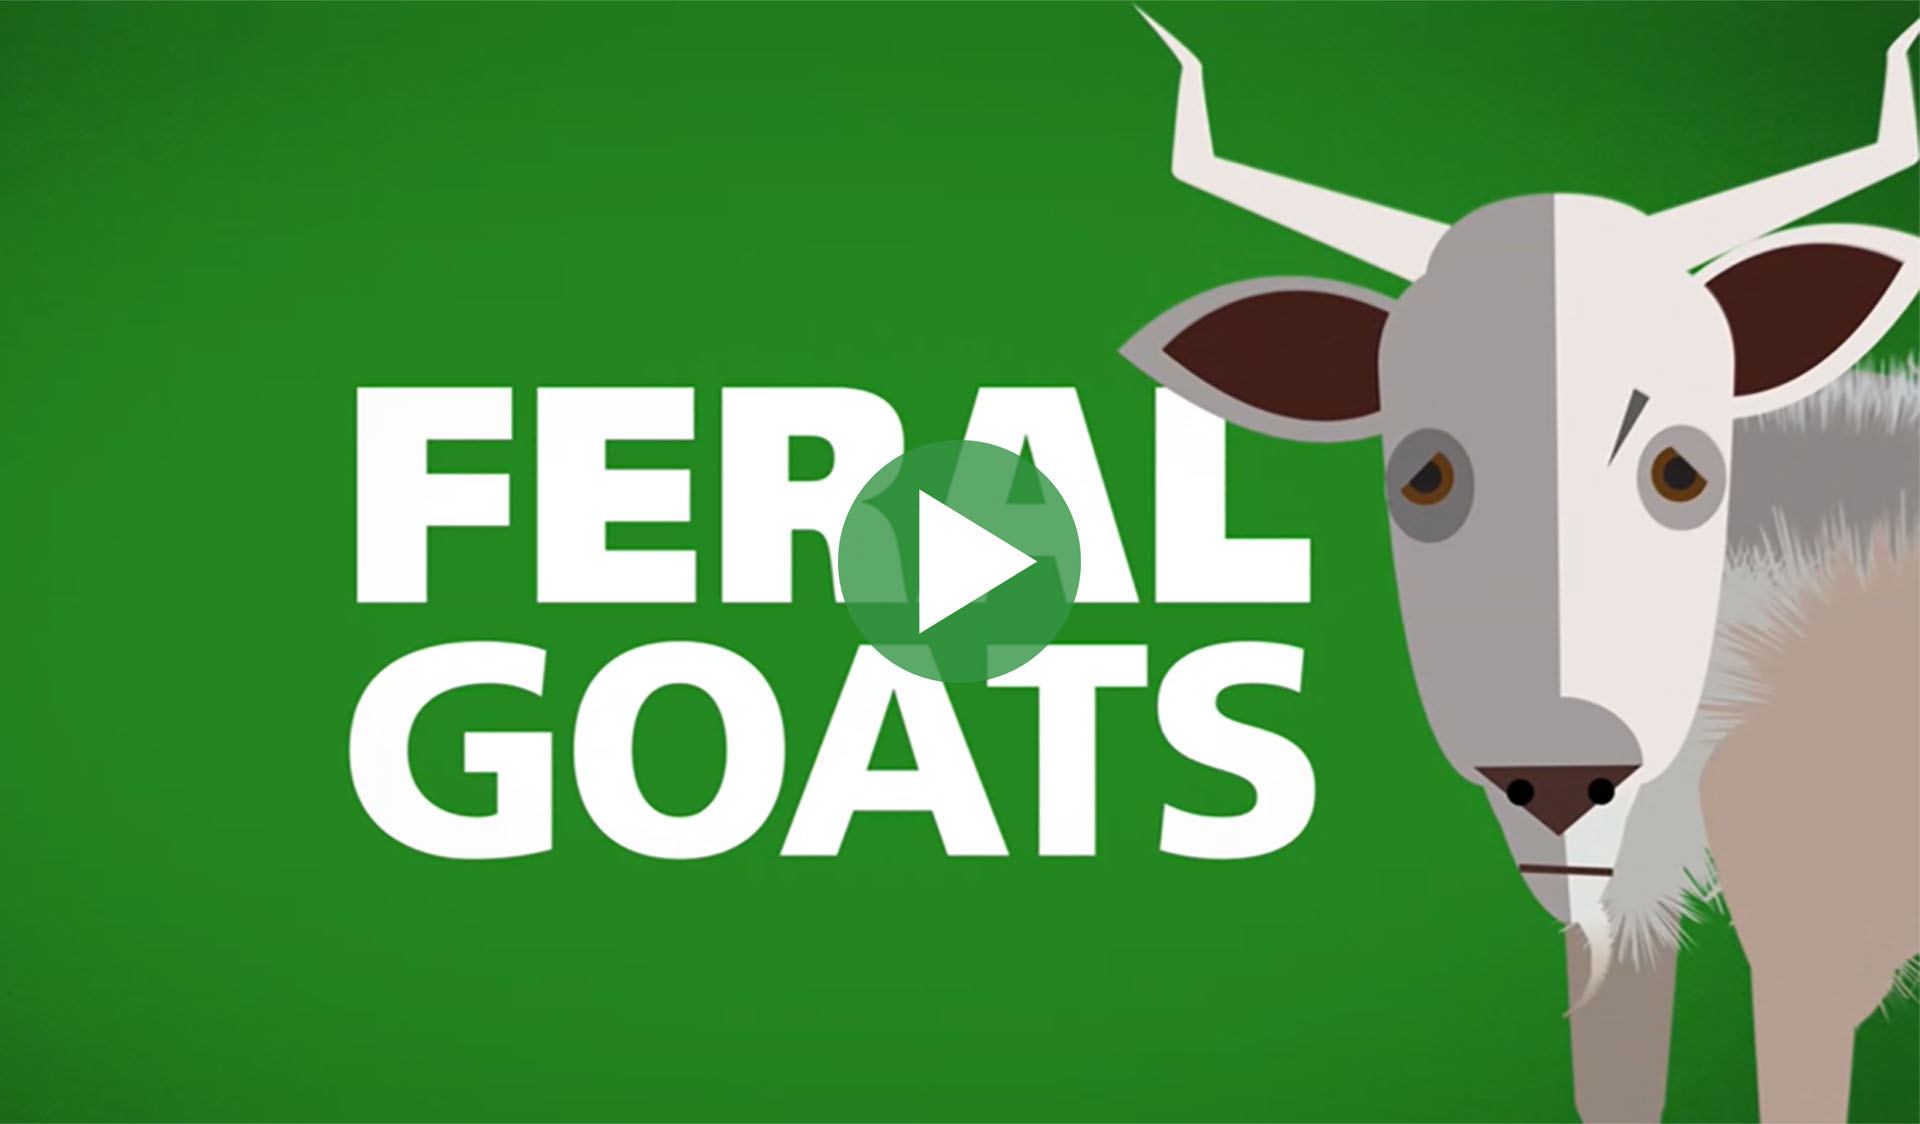 Image still from Feral goats in Victoria video, with play icon overlay.